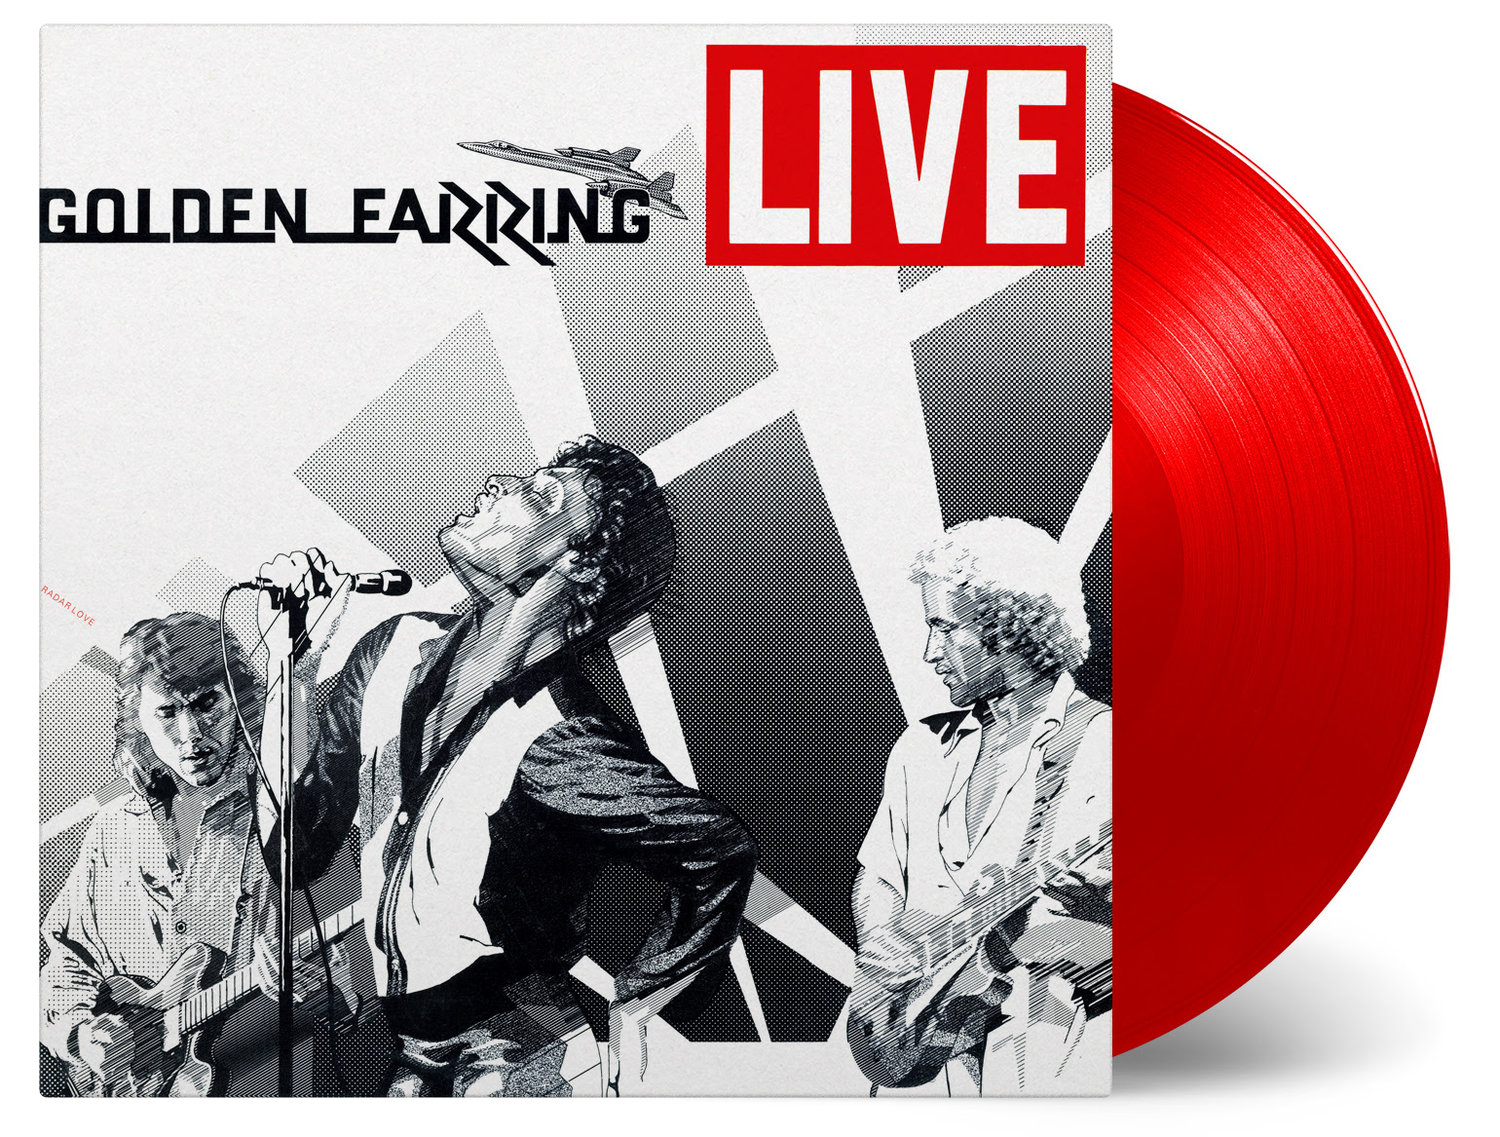 Golden Earring Live 2-LP double doppel coloured Vinyl